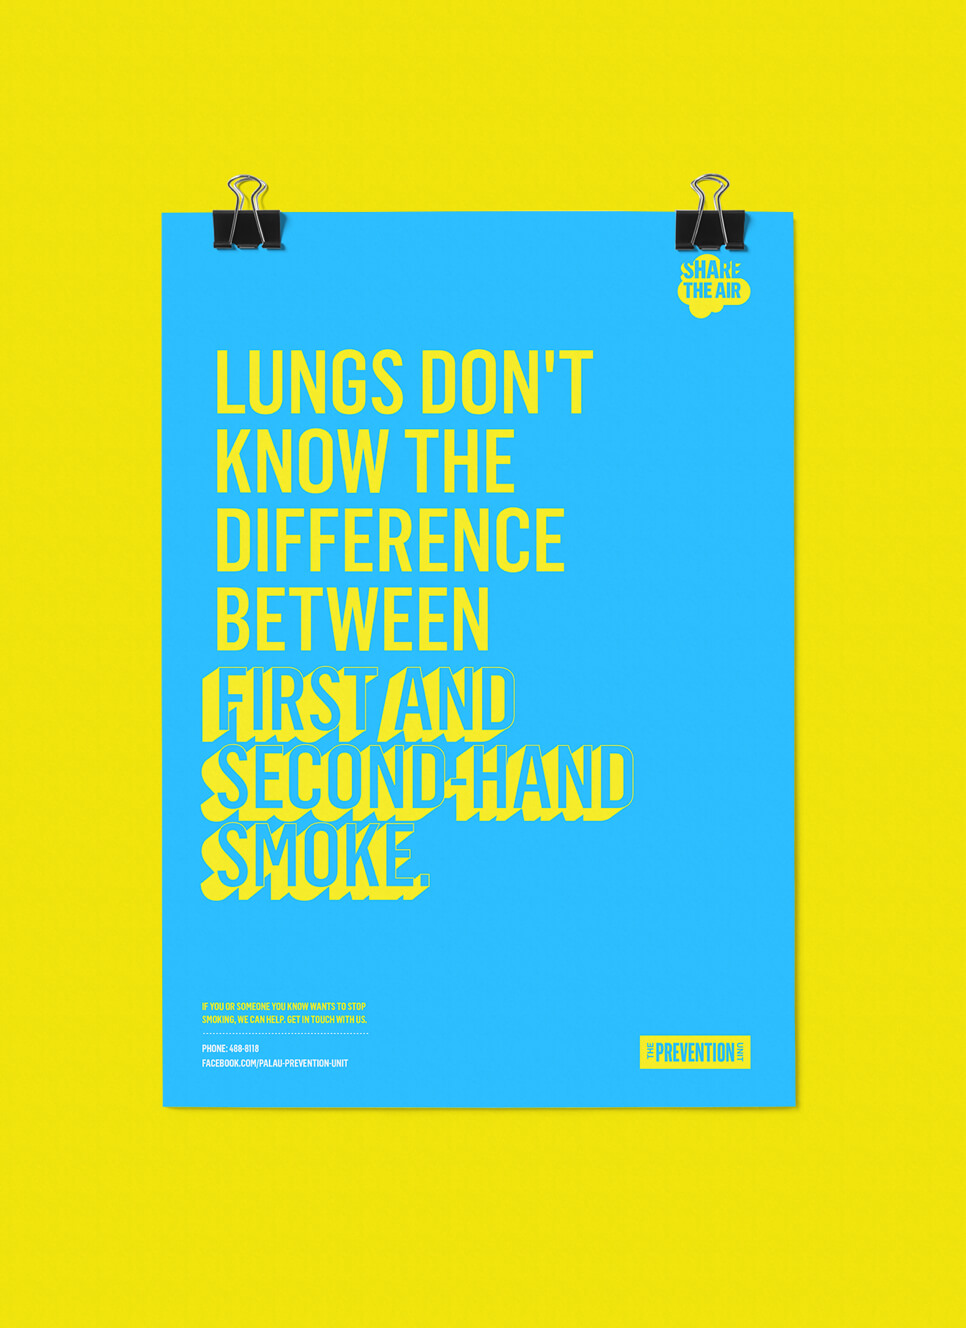 Share the Air second-hand smoke branded campaign posters